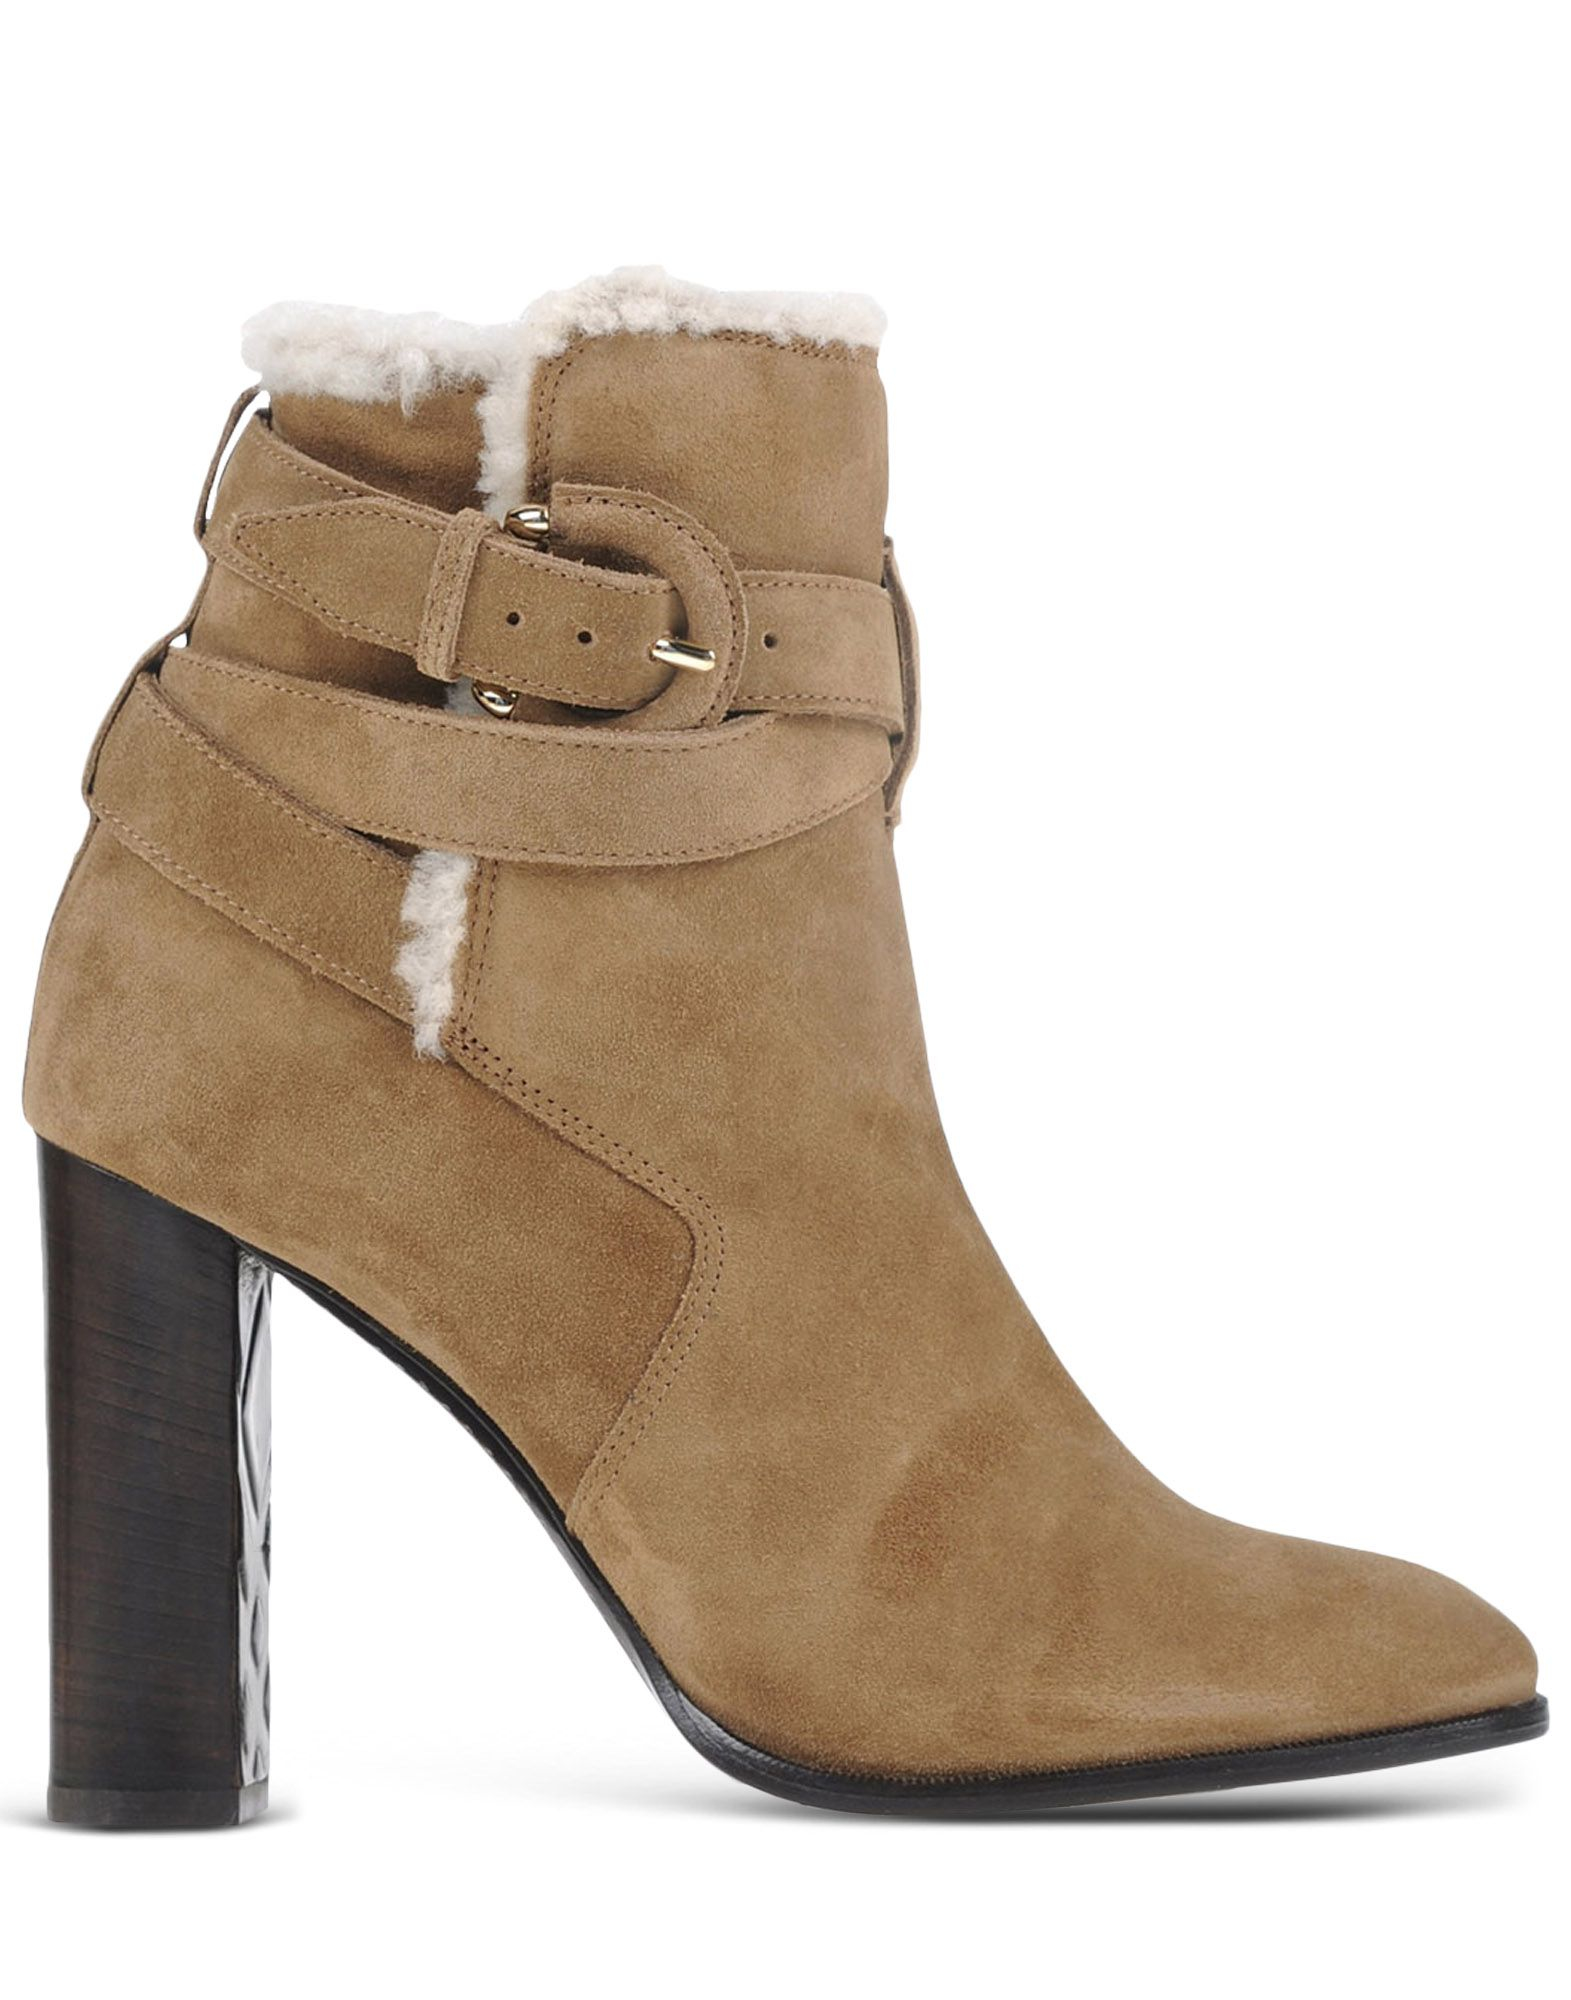 burberry suede ankle boots in beige khaki lyst. Black Bedroom Furniture Sets. Home Design Ideas